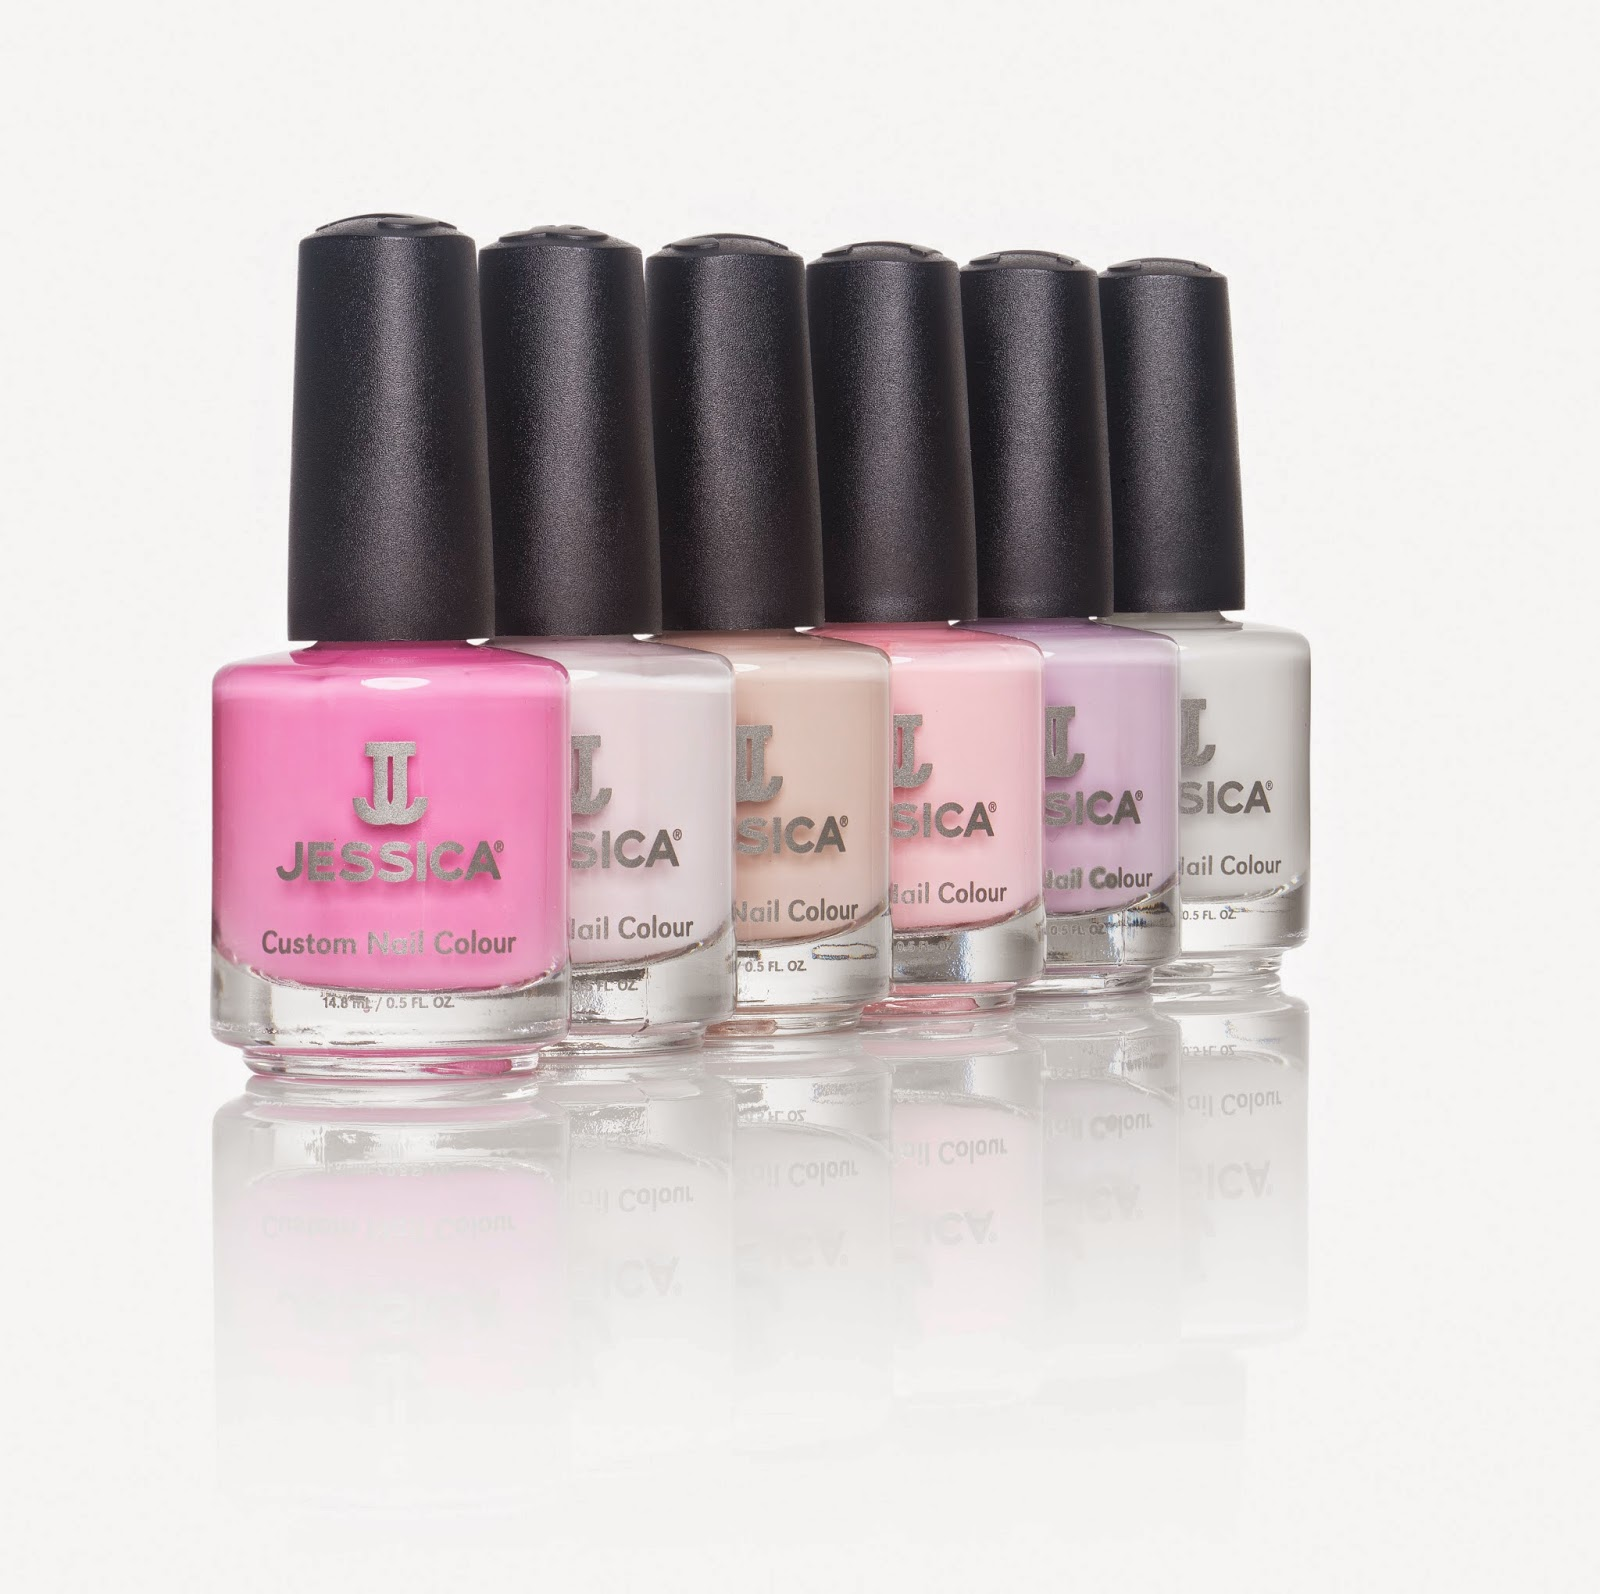 Jessica Spring Nails Whisper Collection | Pixiwoo.com